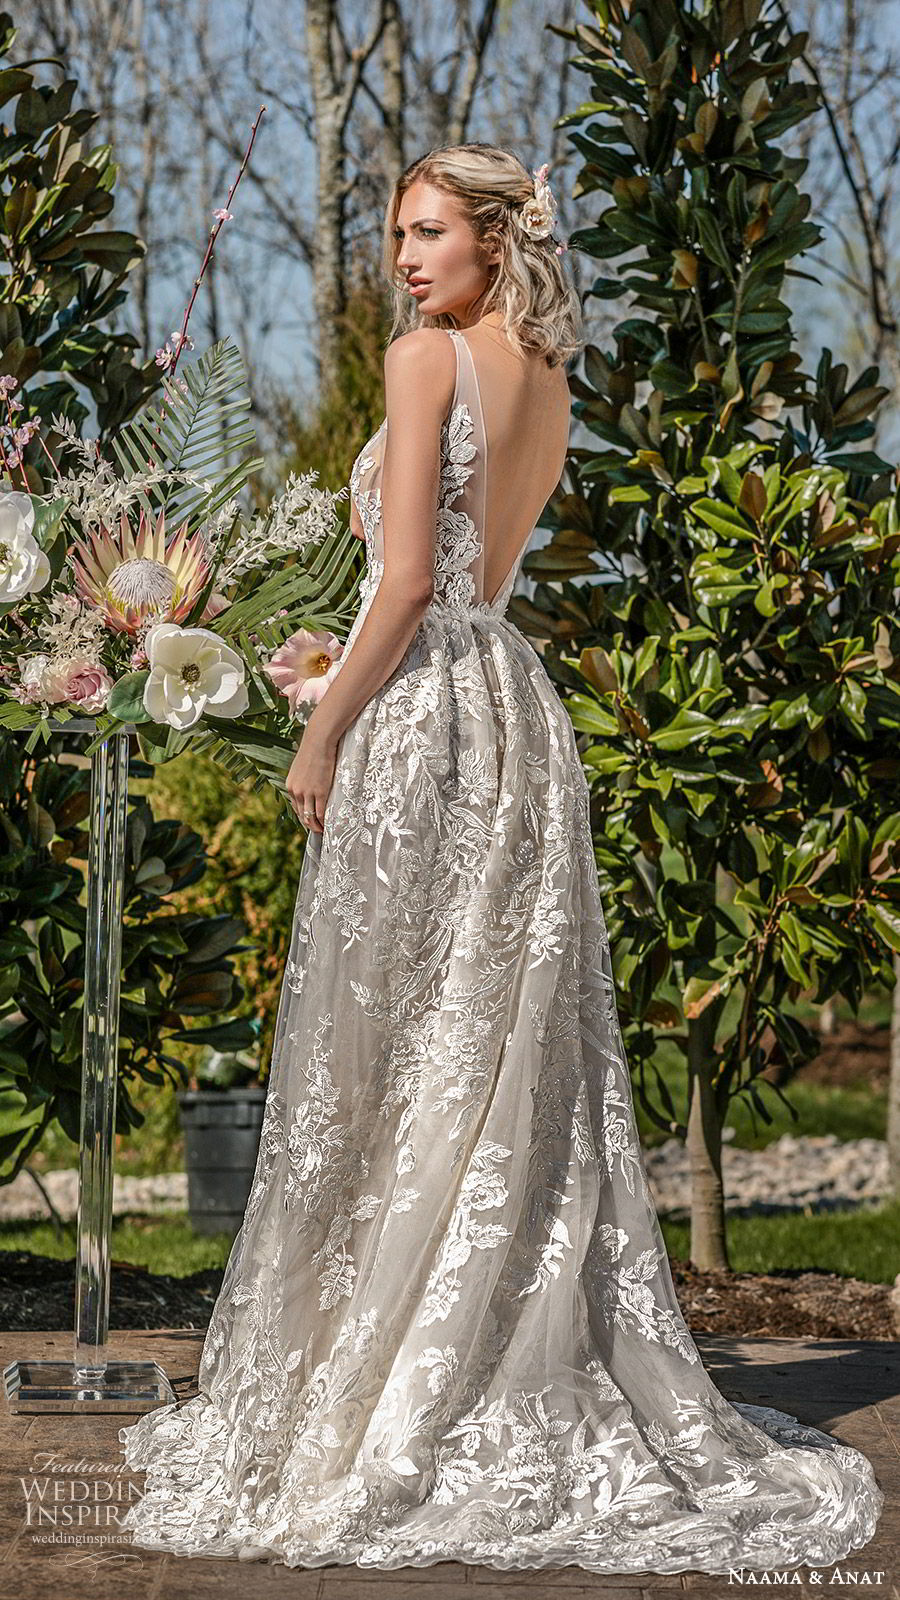 naama anat spring 2020 bridal sleeveless sheer straps deep v neckline illusion bodice fully embellished lace a line ball gown wedding dress (5) low back chapel train princess romantic bv